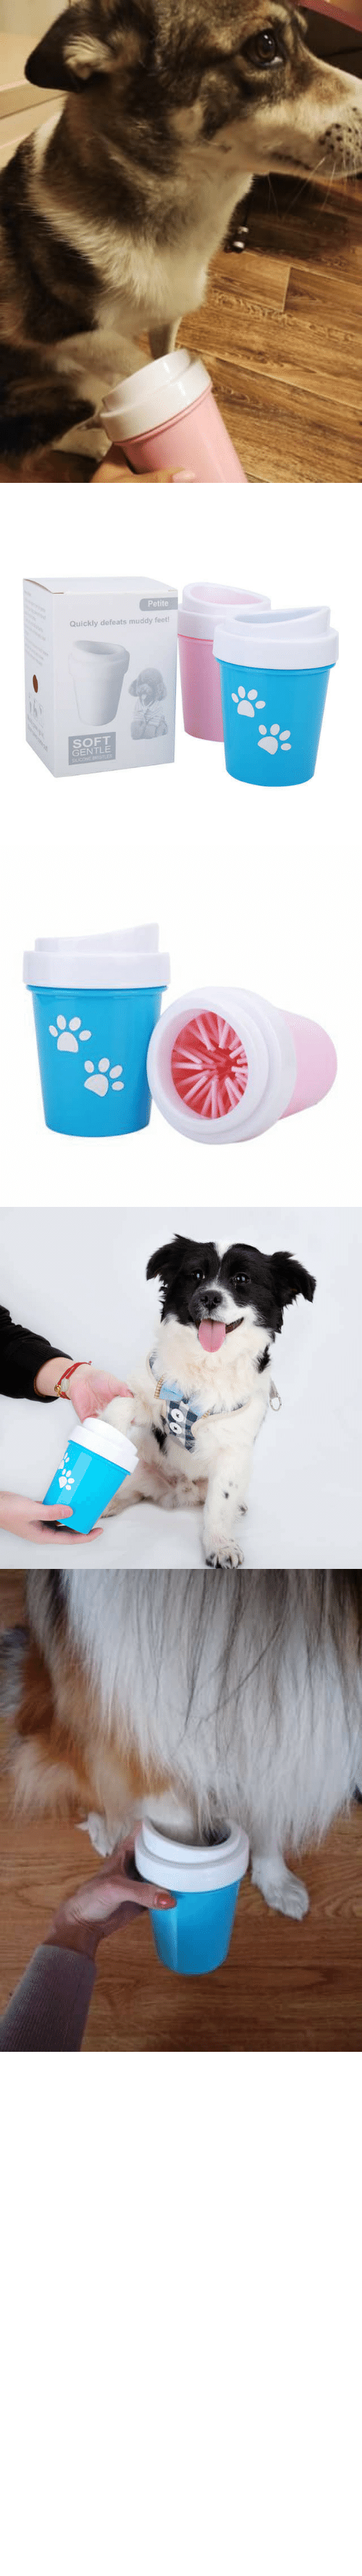 "It All: awesomage:   PAW CLEANER     Now your best friend can have all the muddy dirty fun he wants without bringing it all into your home or vehicle.    30% OFF plus Free Worldwide Shipping with coupon code ""CUDDLING""    All funds gathered will be donated for rescue dog shelters    SUPPORTS US NOW, ORDER AND SHARE OUR CAUSE!https://www.doggiemon.com/products/paw-cleaner"